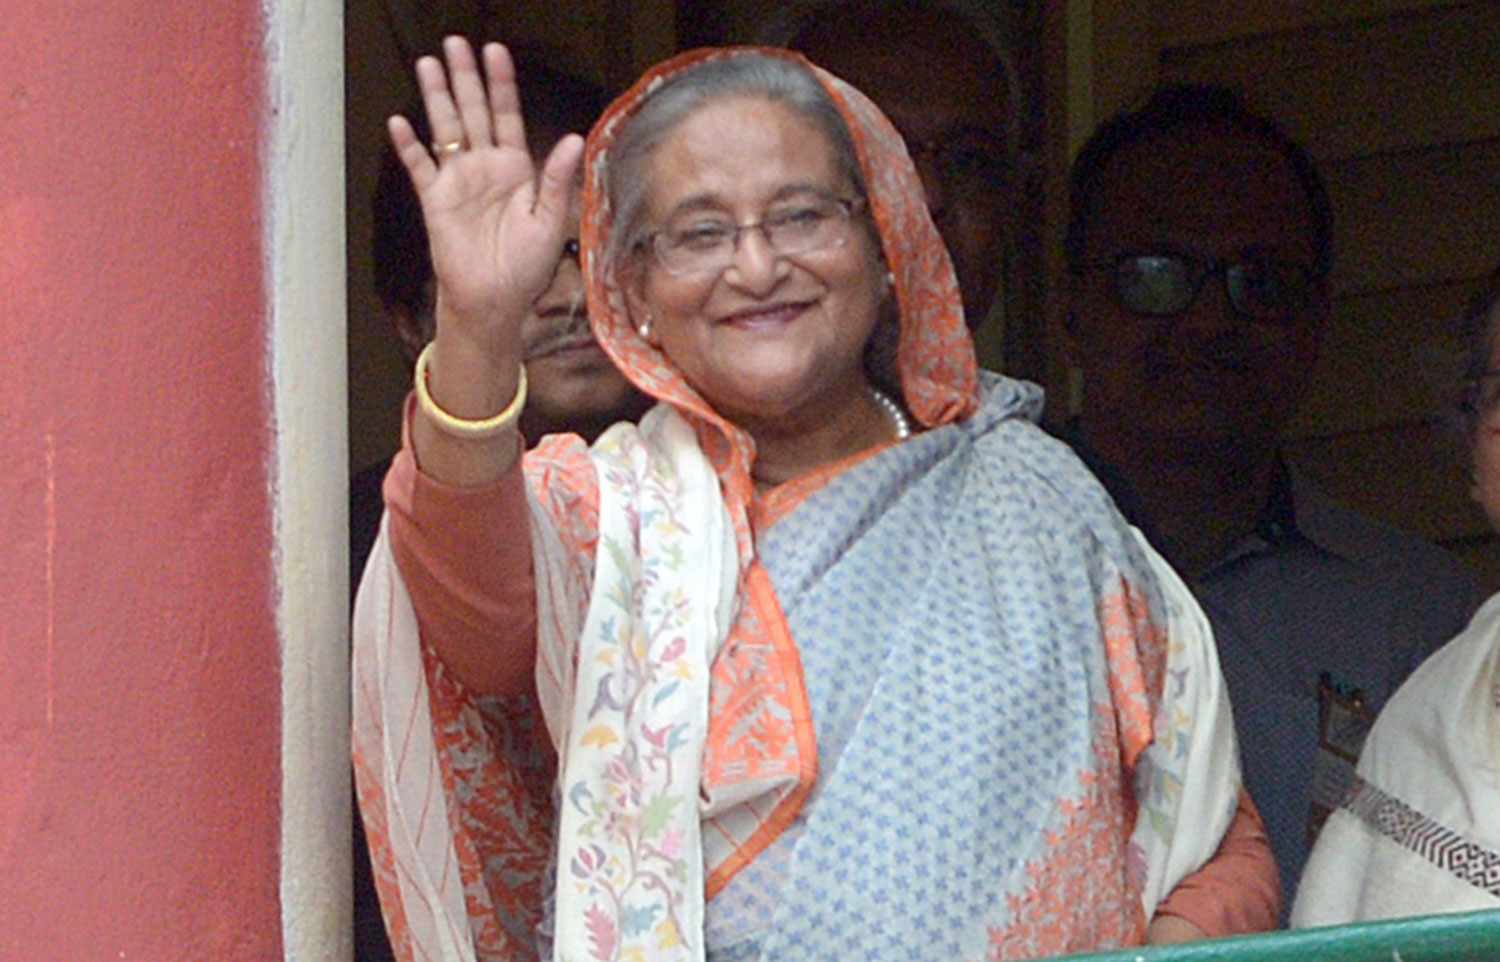 Sheikh Hasina. The erstwhile JMB was weakened due to crackdowns in Bangladesh by her government, sources said